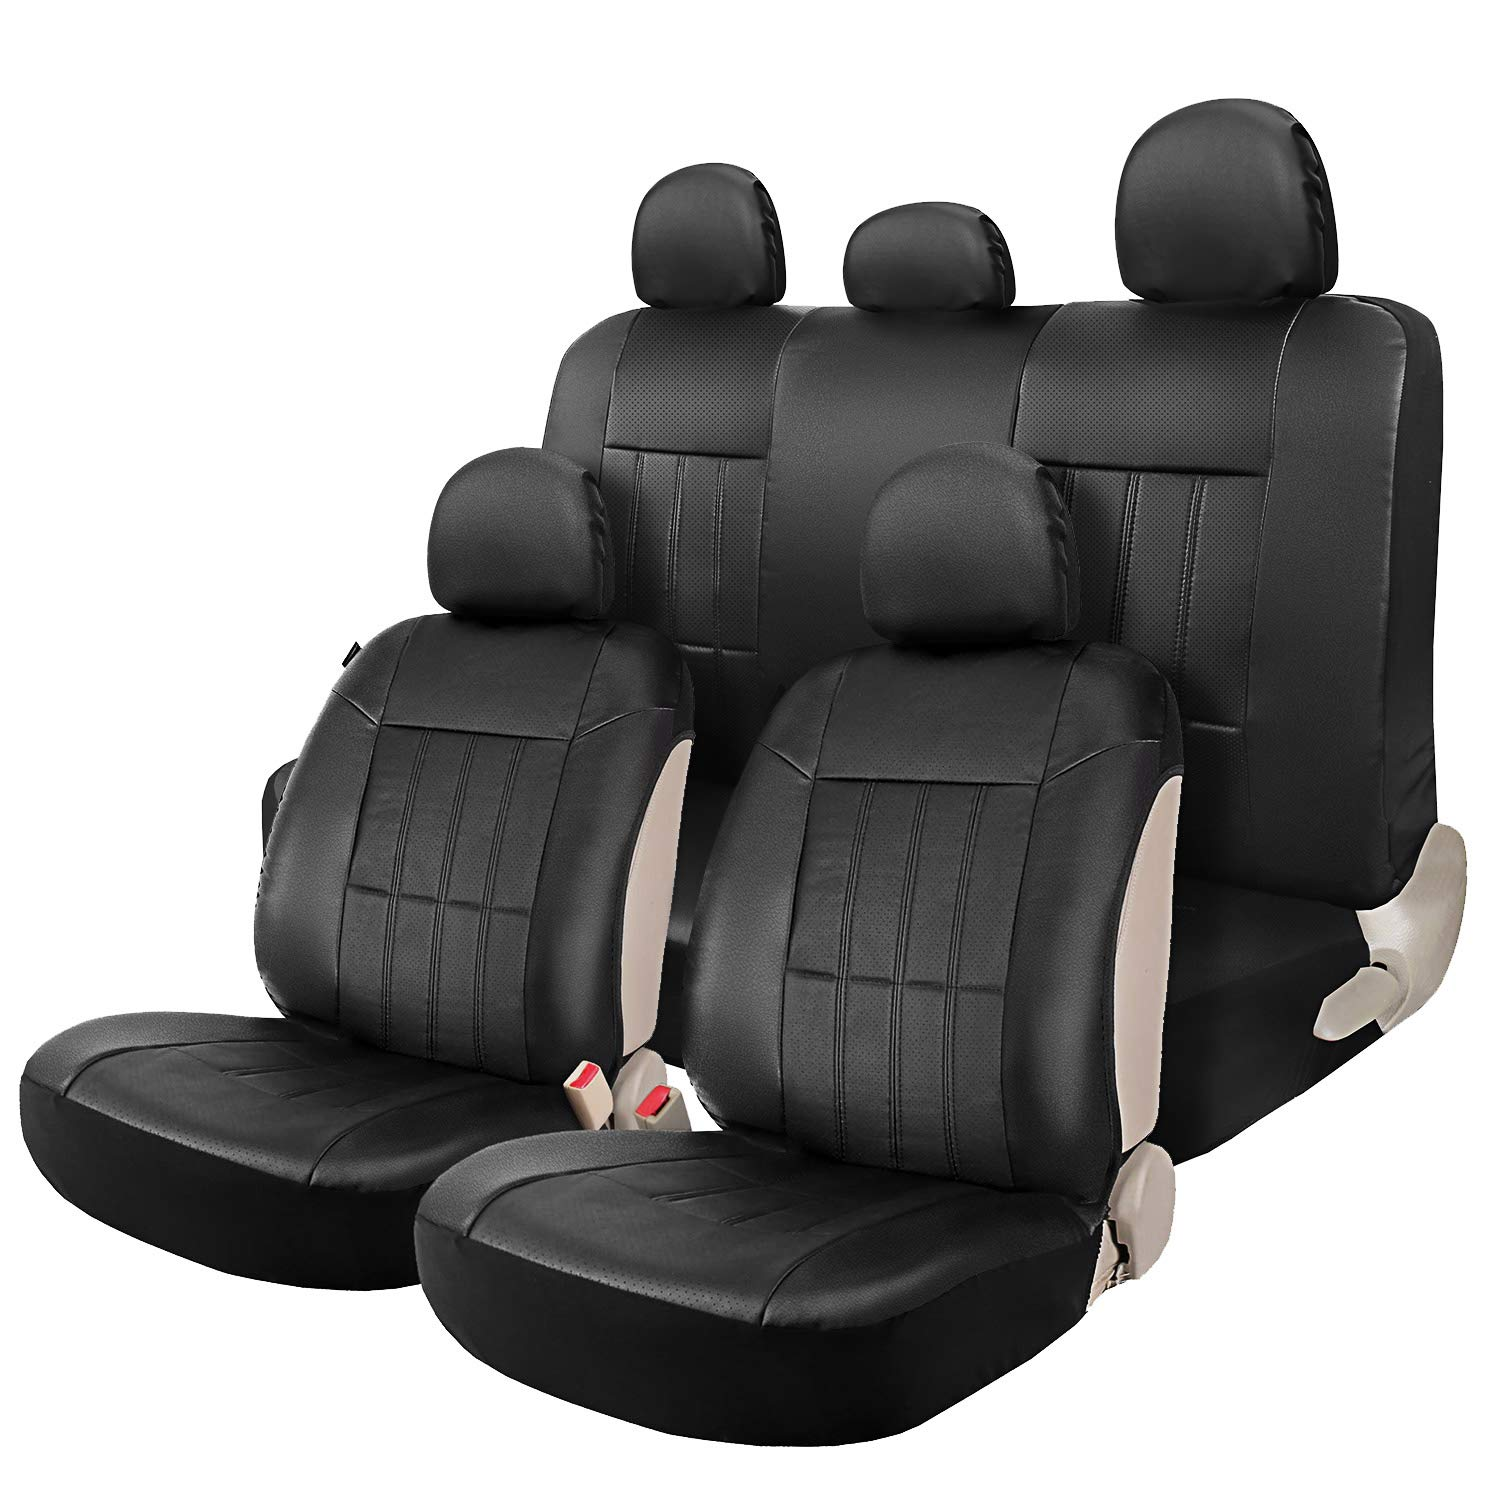 Genenal Faux Leather Black Auto Sideless Seat Covers Full Set Universal for Cars Truck SUV - Leader Accessories